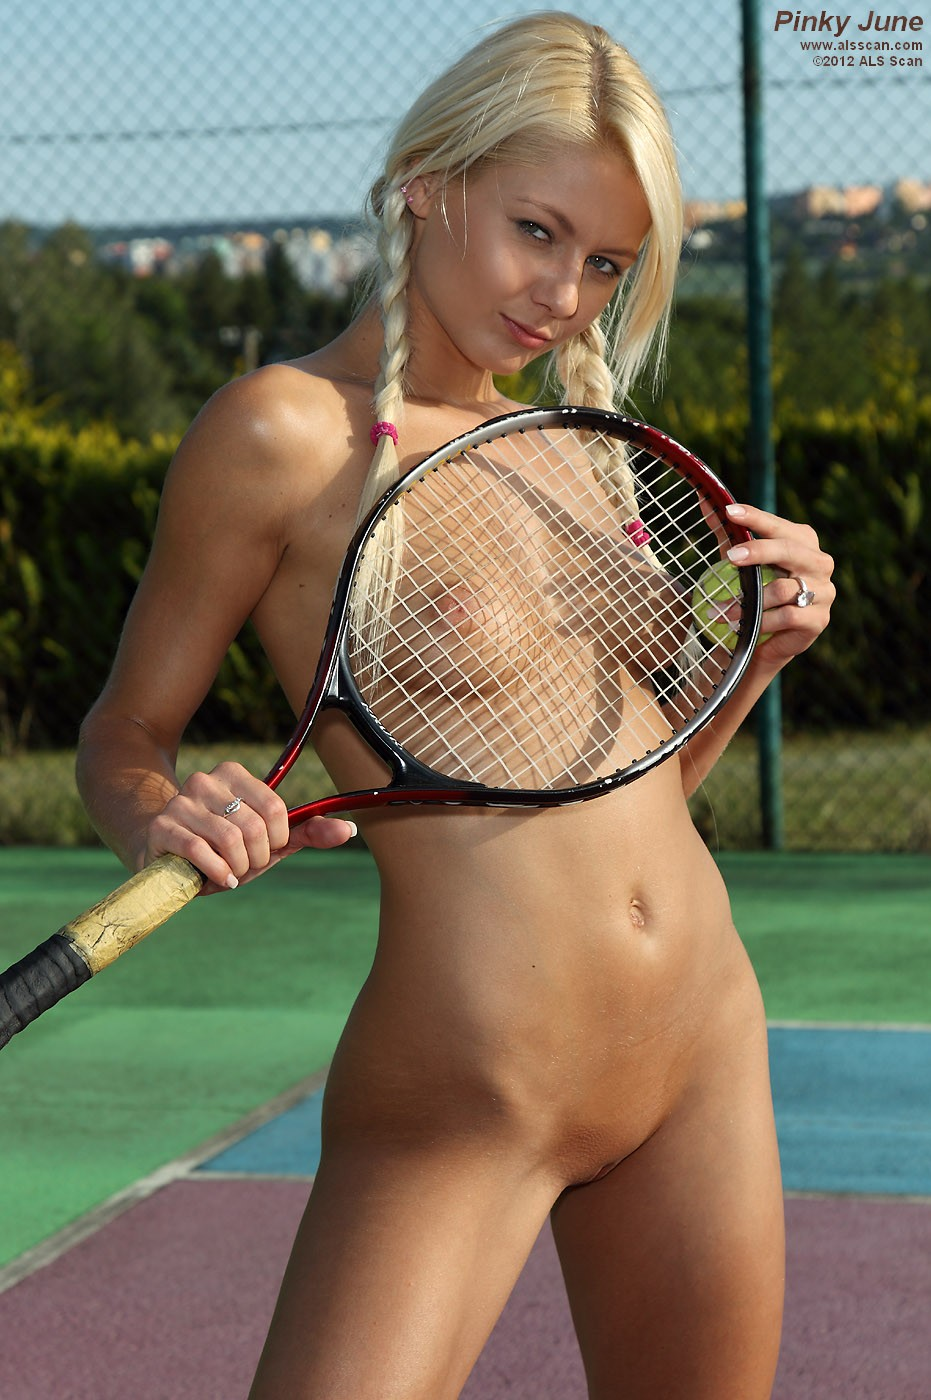 hot-women-nude-tennis-big-men-small-woman-sex